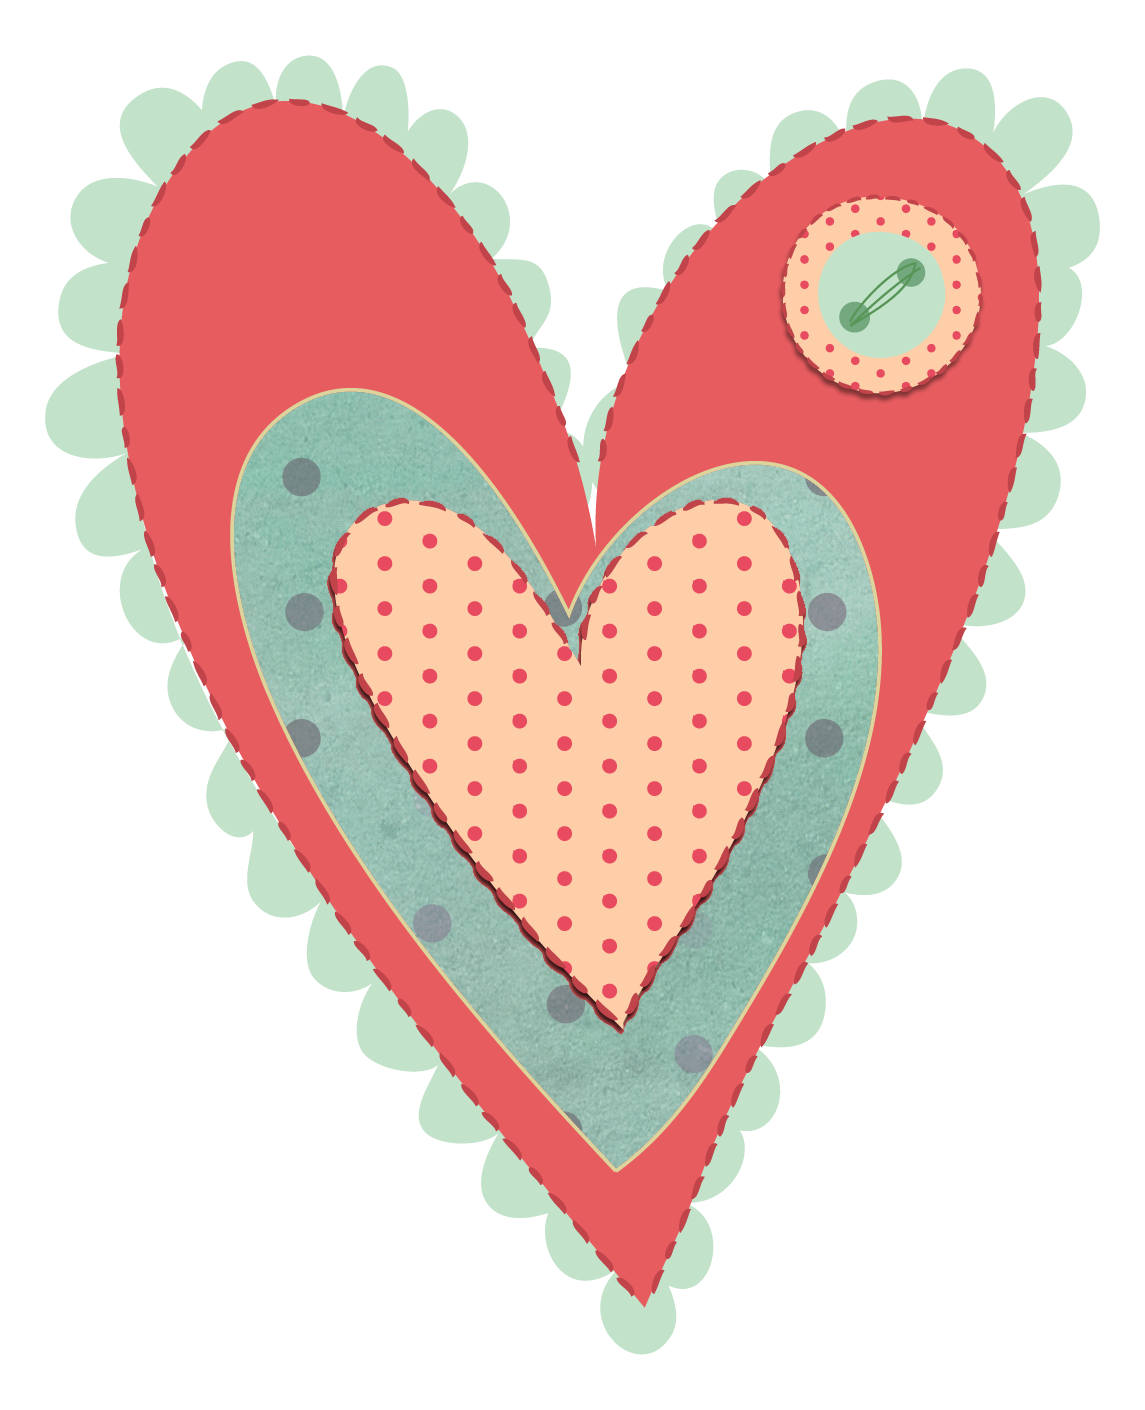 Free shabby chic png. Hearts clipart scrapbook